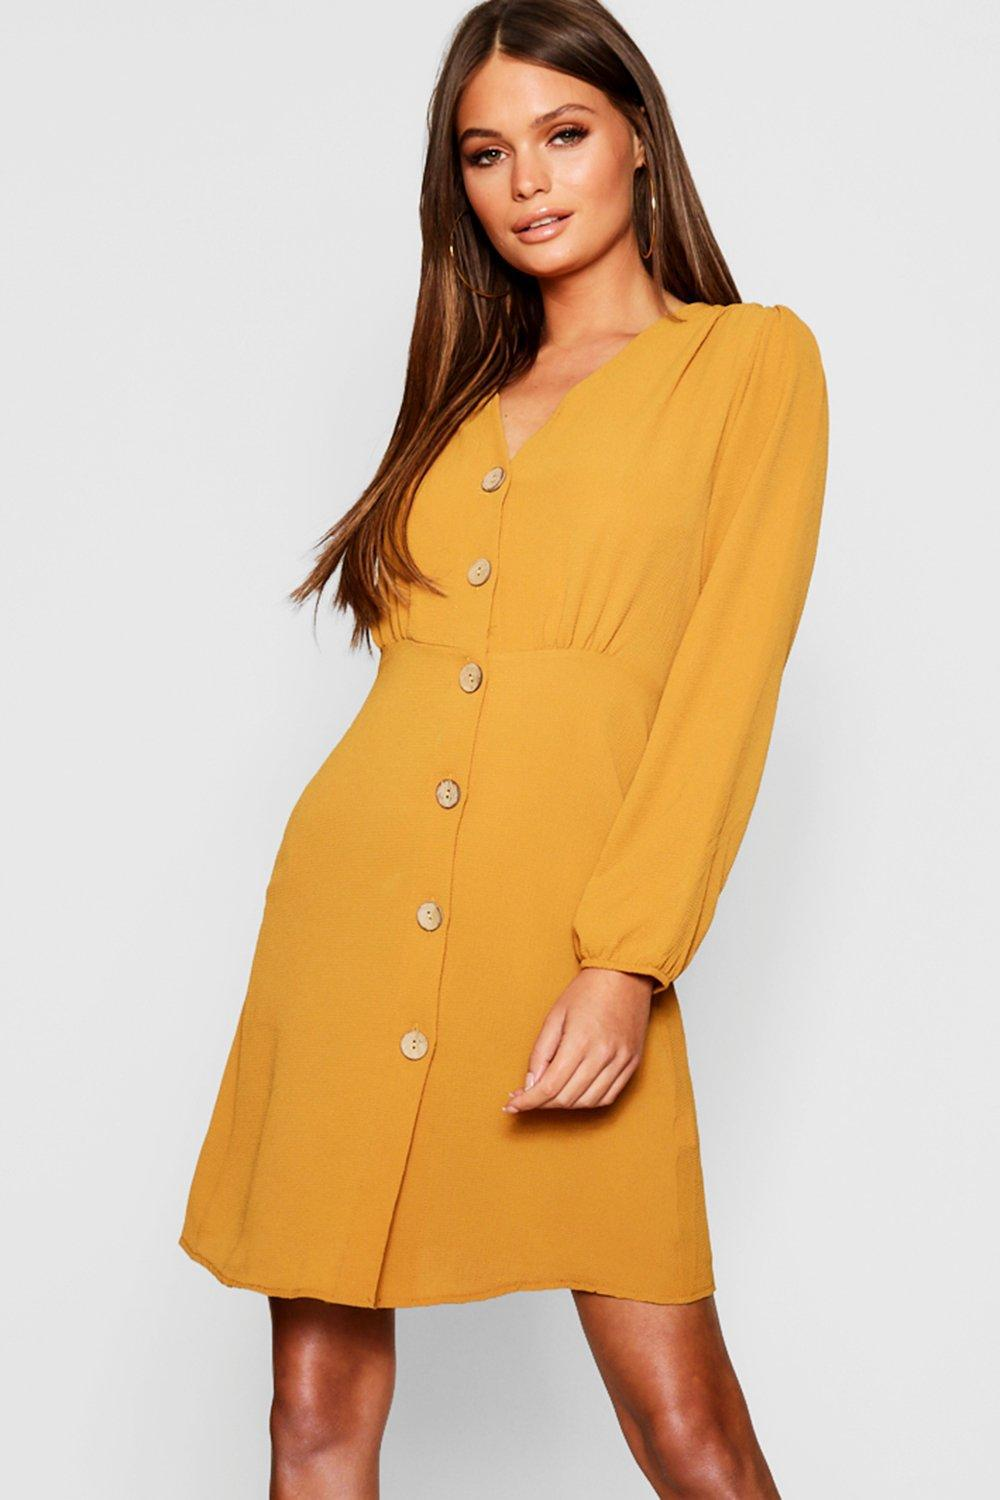 d6ddc9f55c Boohoo Satin Button Front Skater Dress in Yellow - Lyst